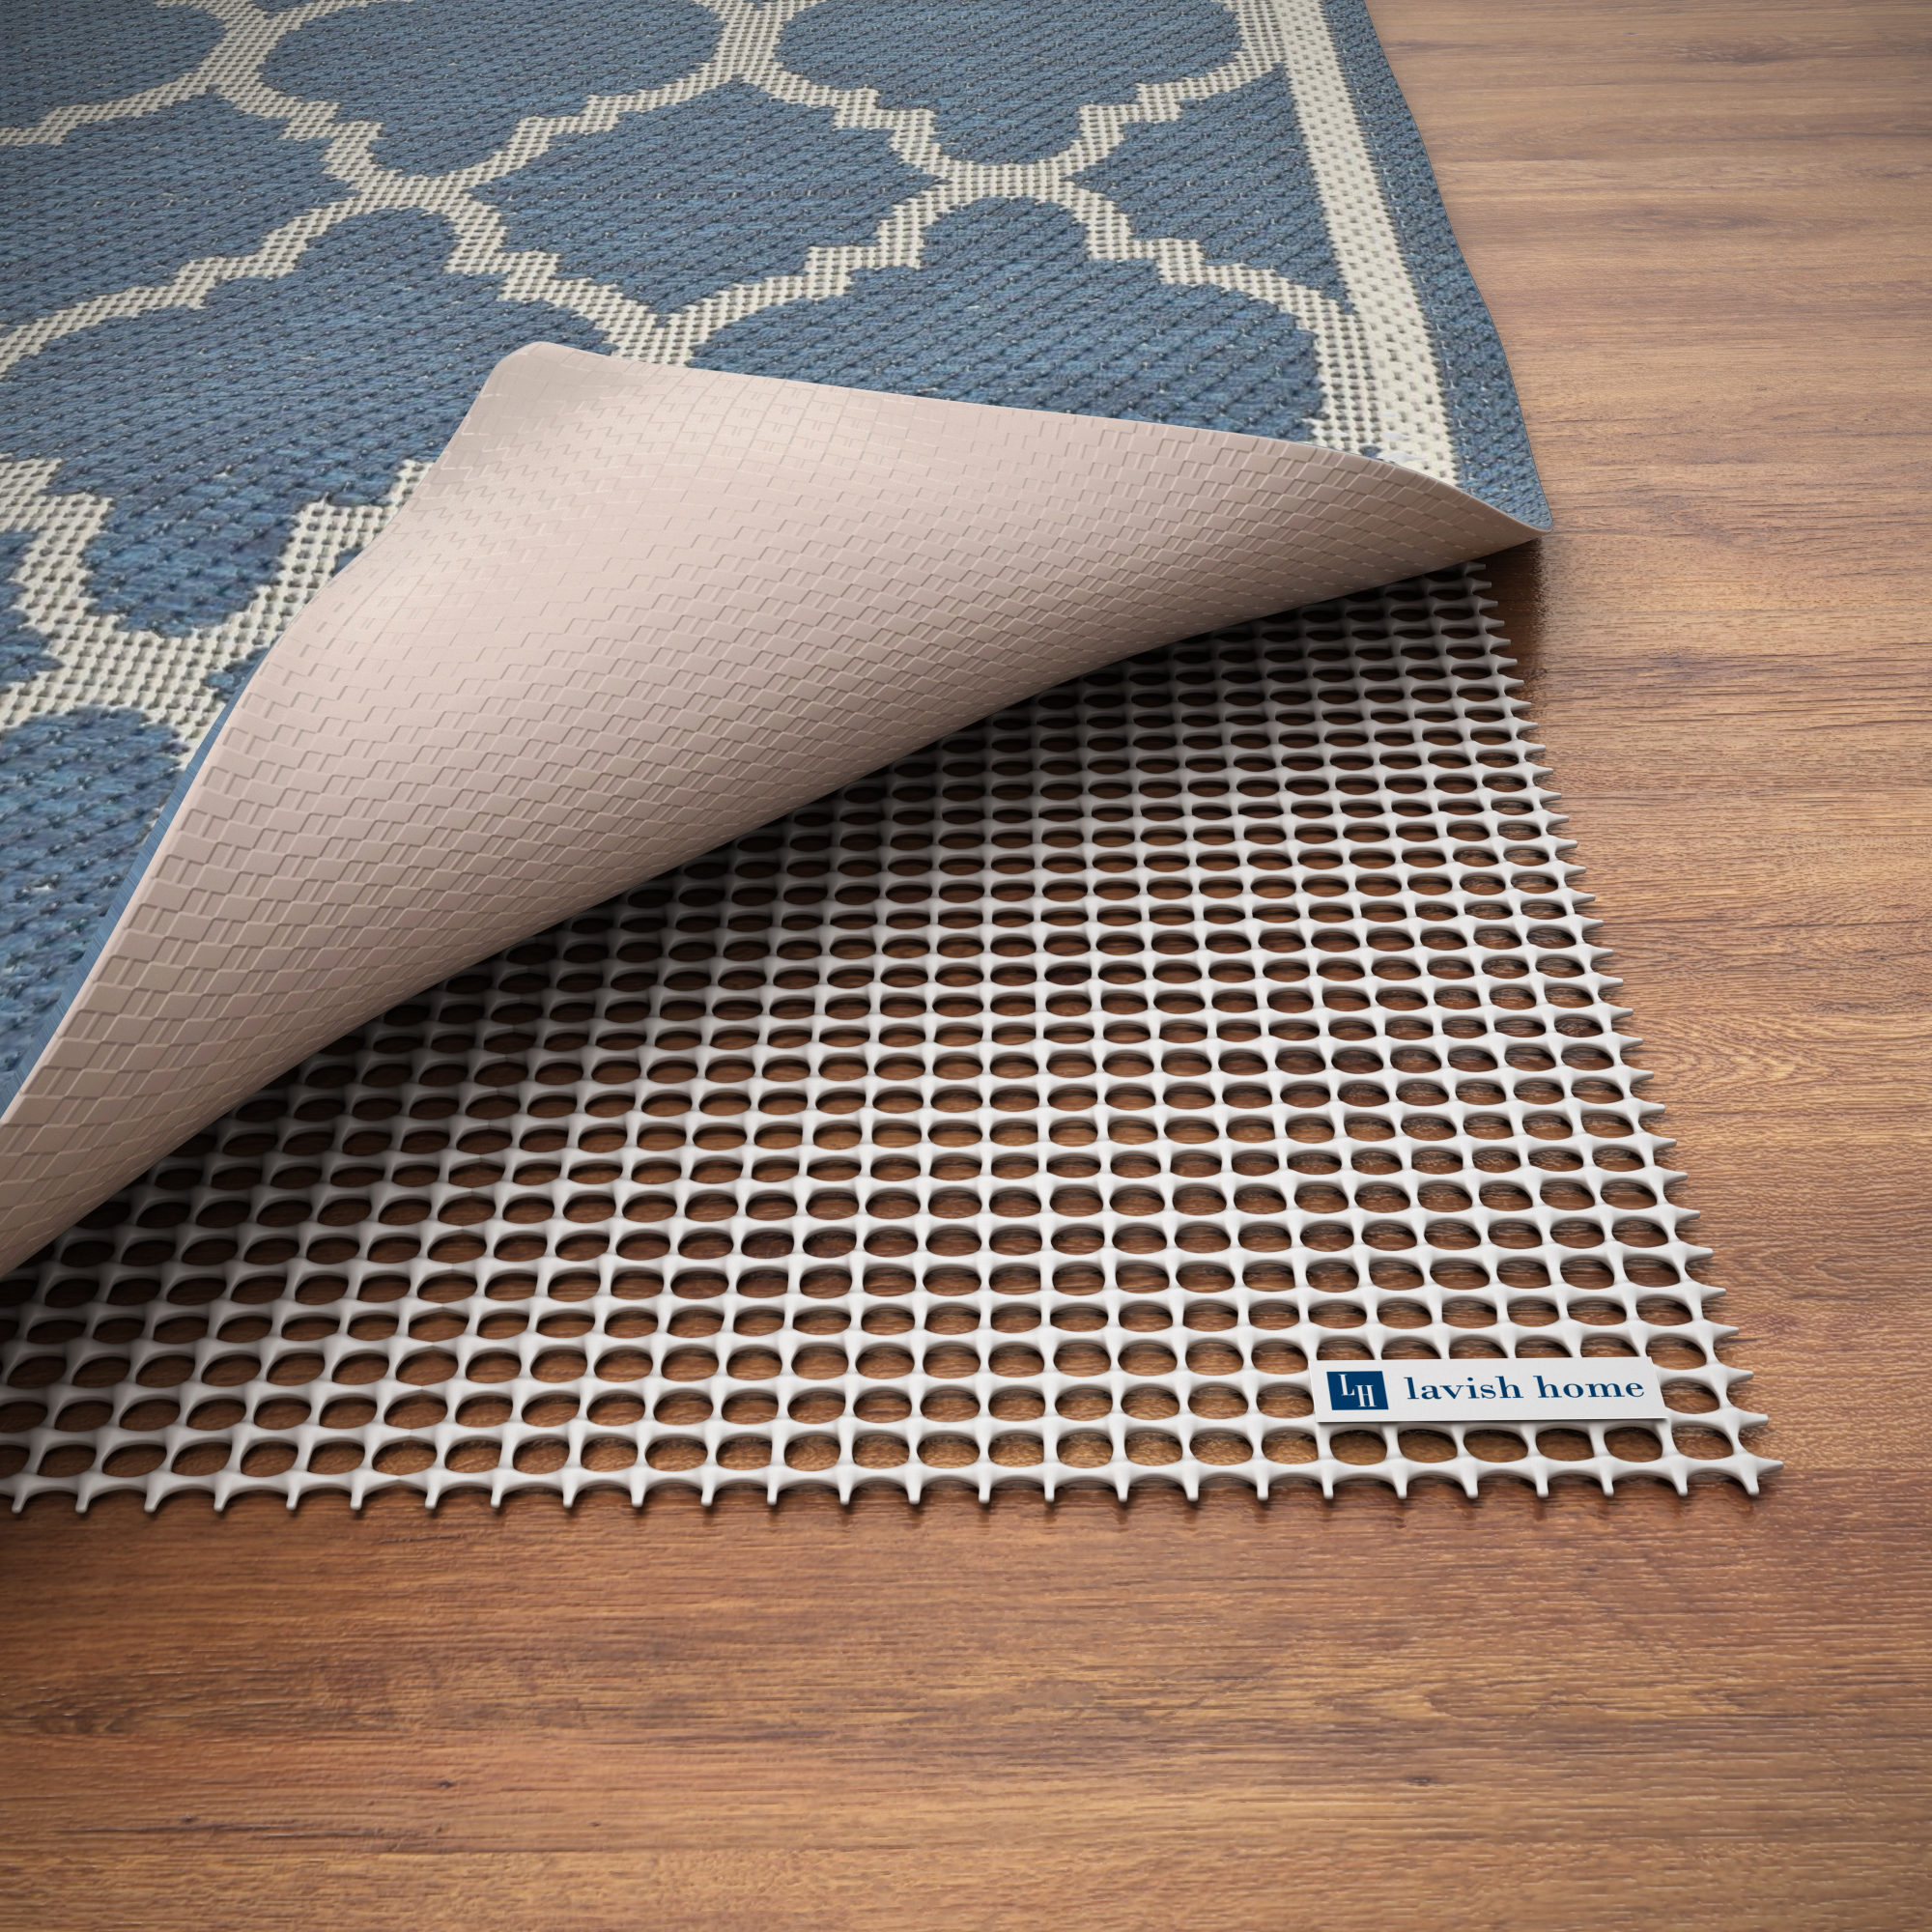 Area Rug Non Slip 5 X 8 Feet Underlay Non Skid Pad Rubber Rug Runner Cut To Size